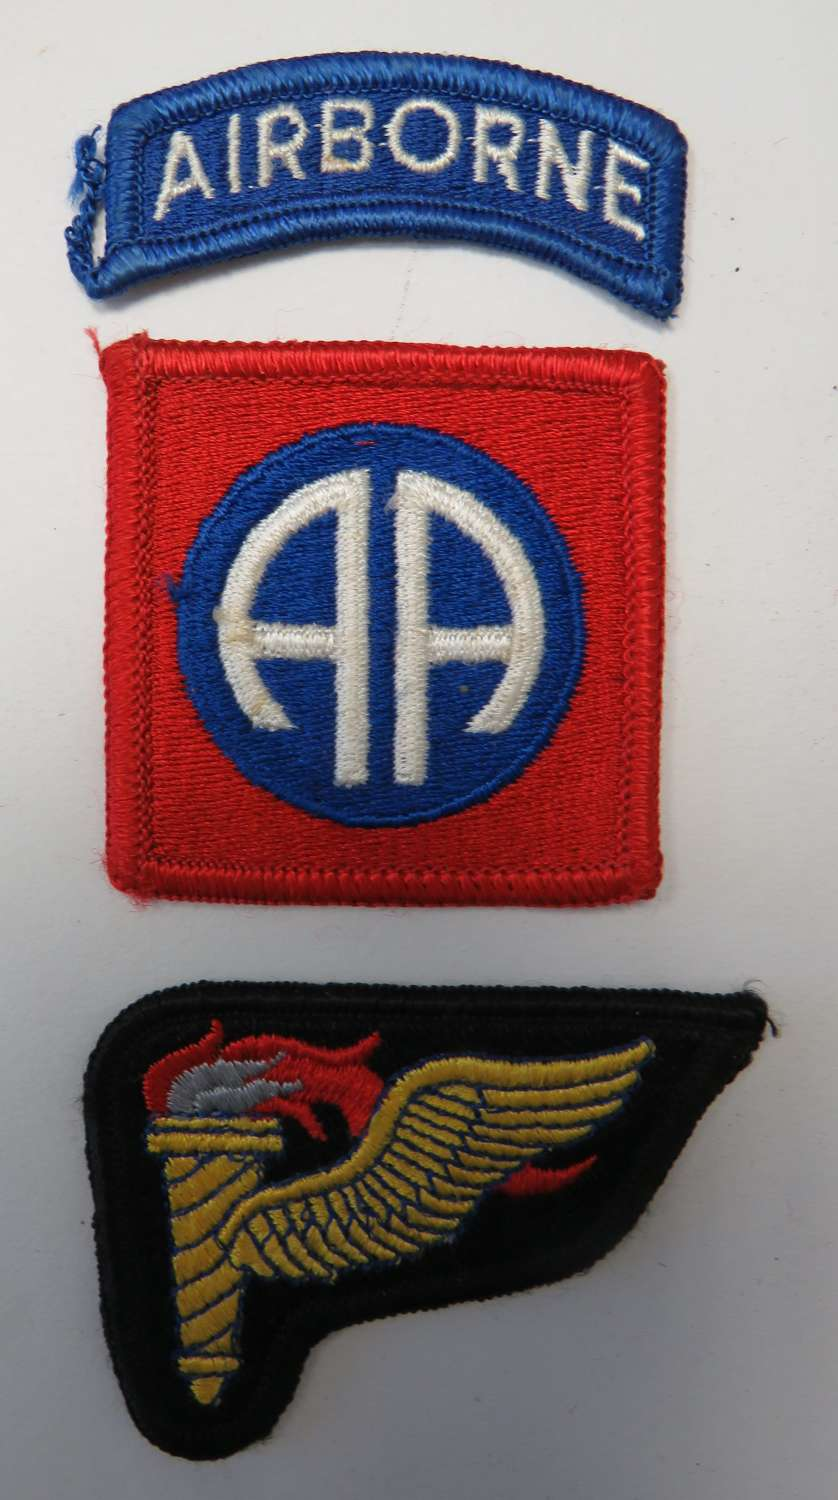 82nd Airborne Badge and Pathfinder Cuff Badge